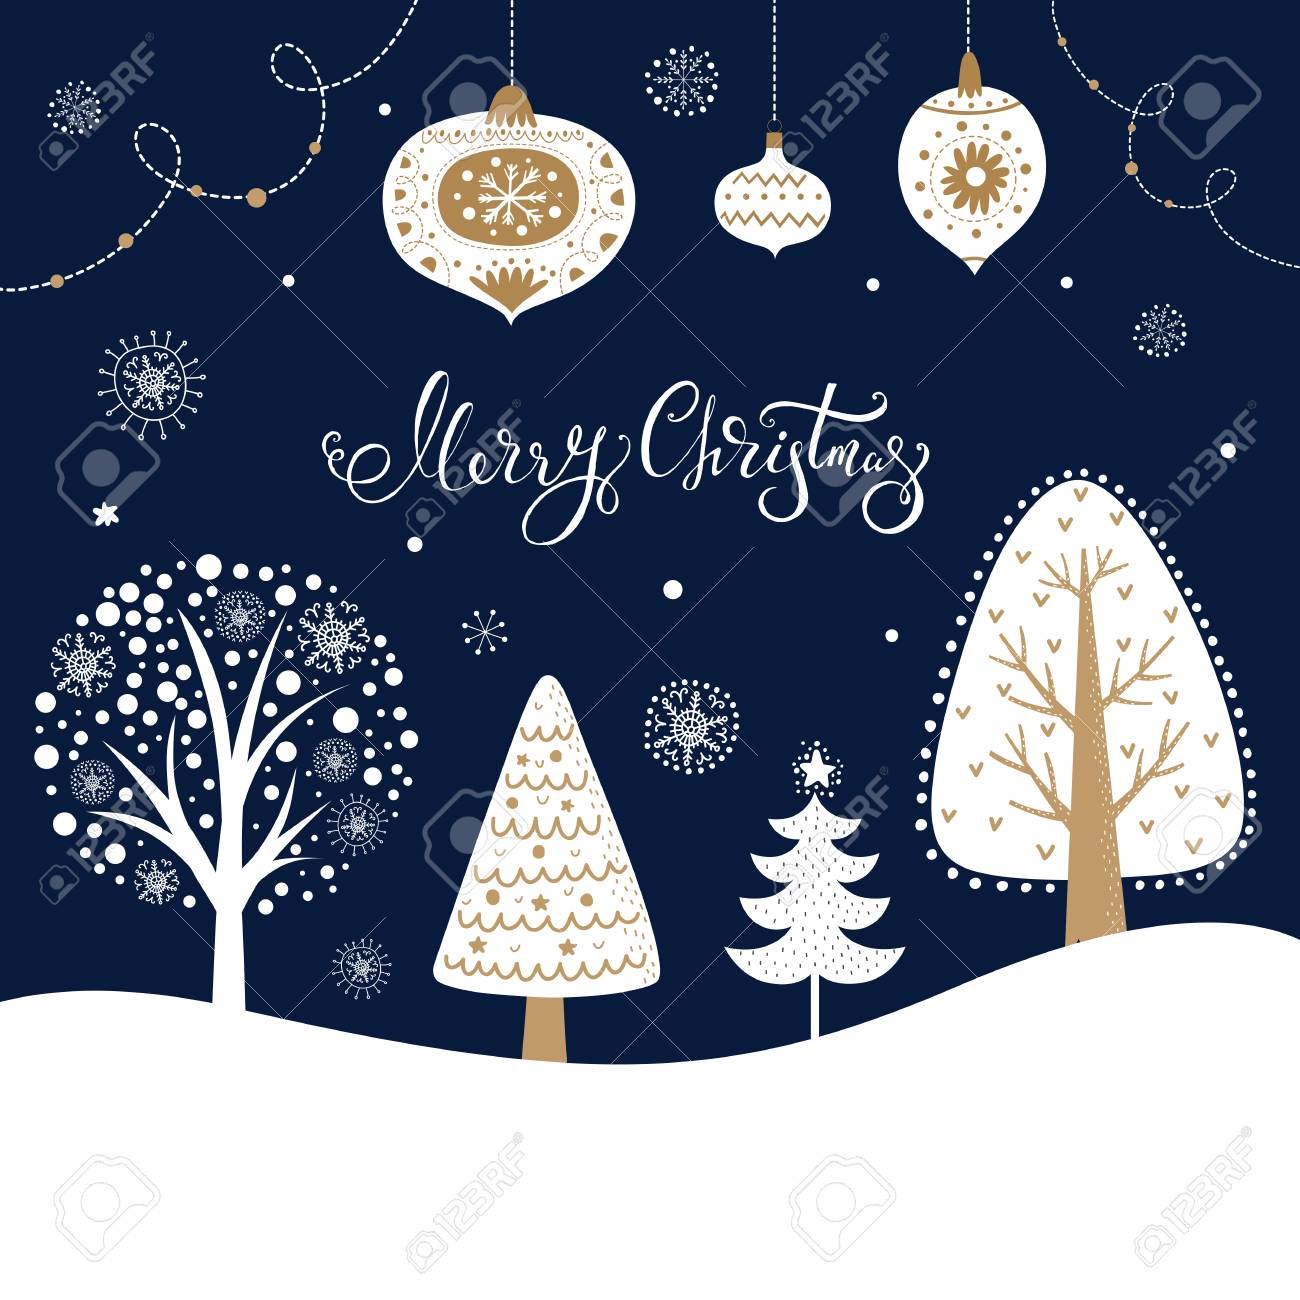 Christmas illustration with trees, fir tree, snowflakes and toys - 90921961